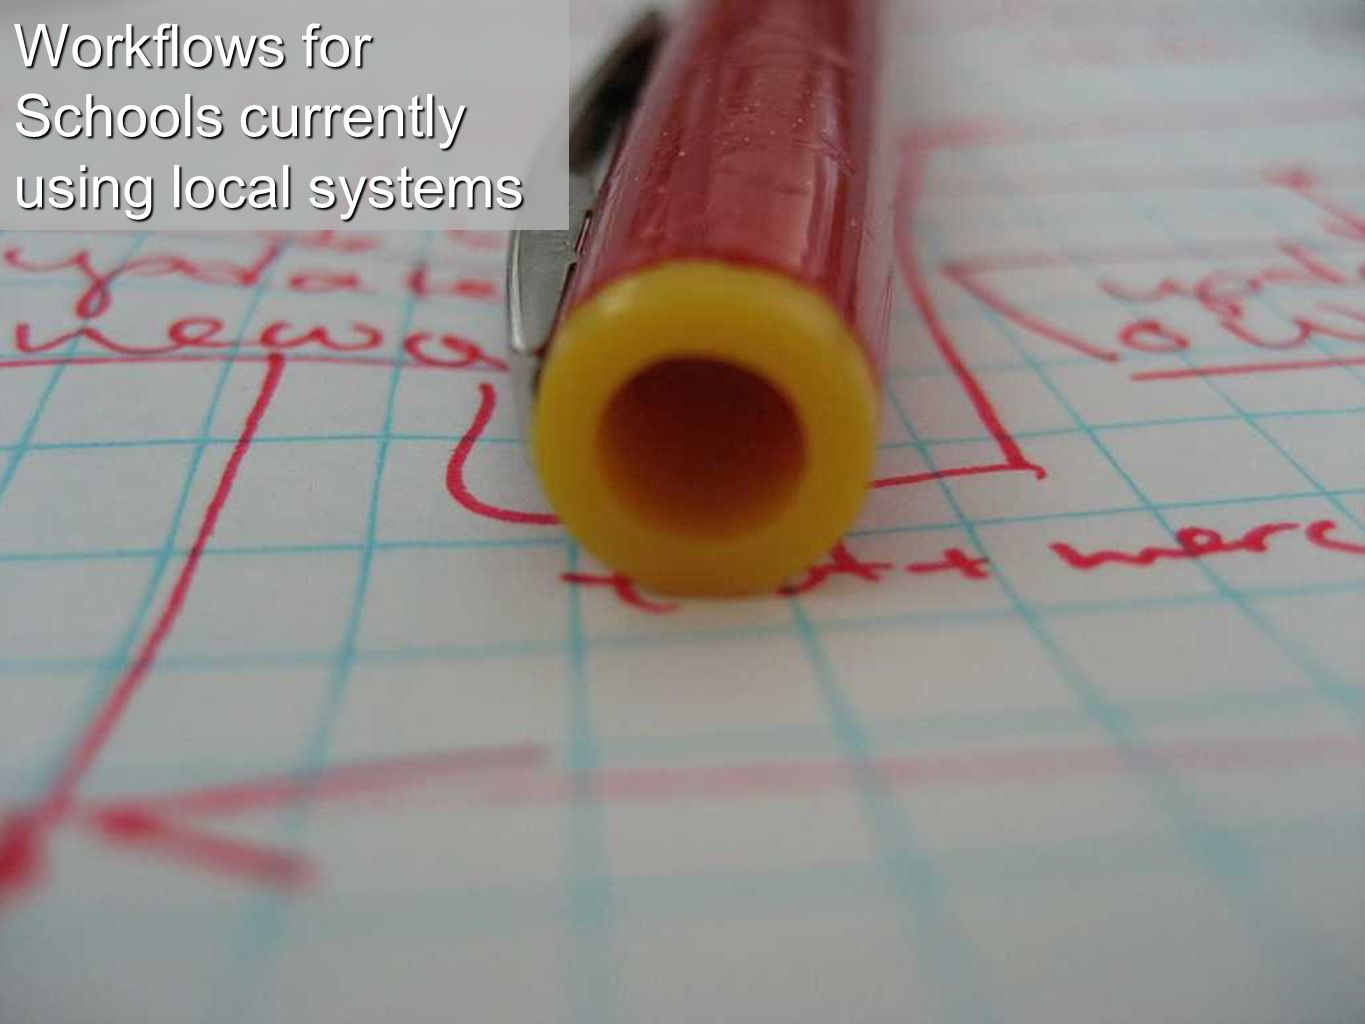 Workflows for Schools currently using local systems